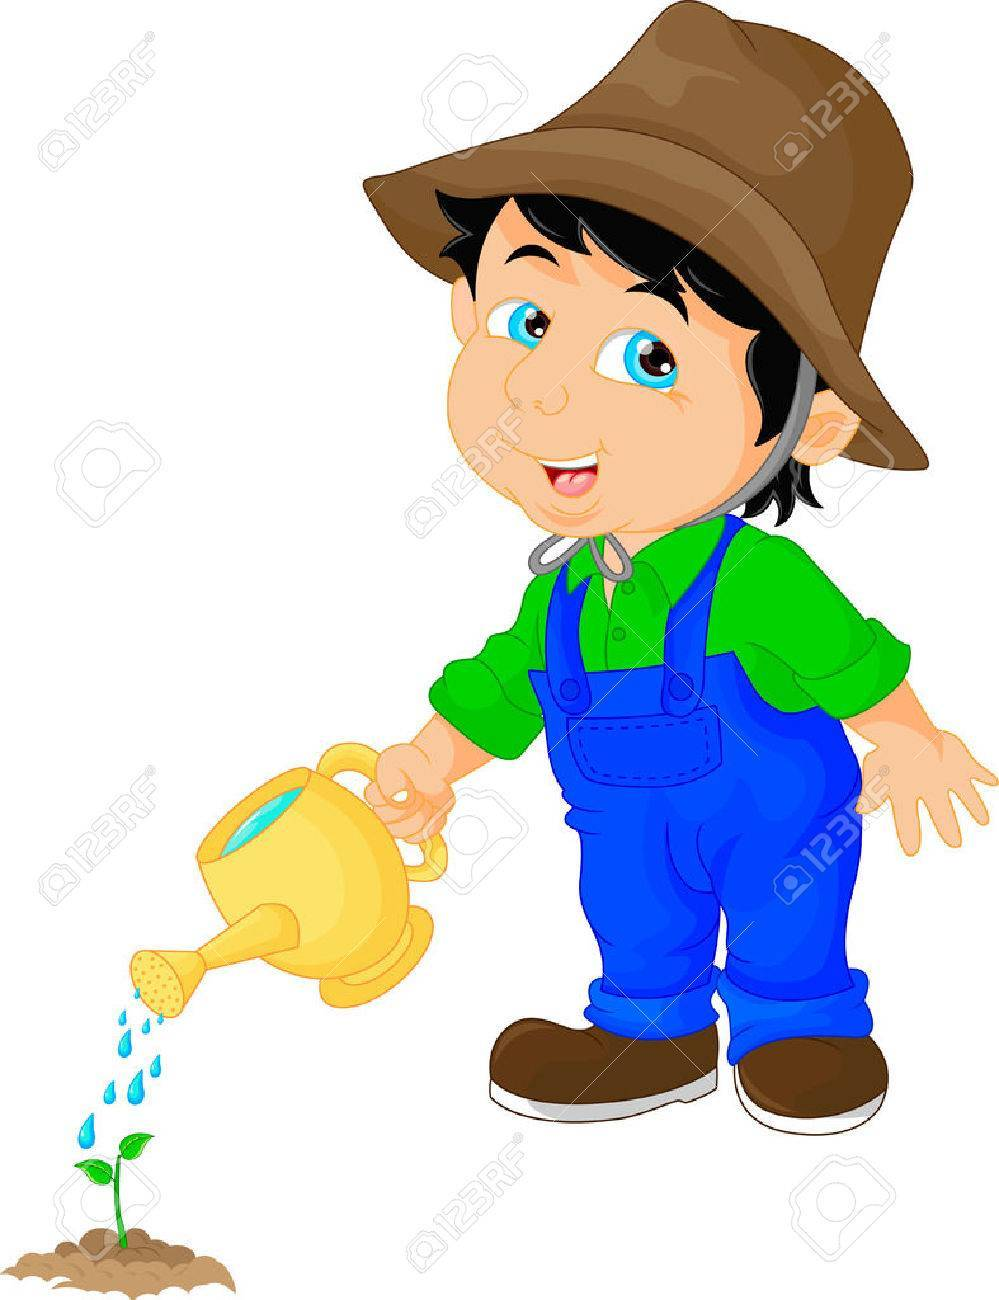 Boy watering the plants clipart 3 » Clipart Portal.